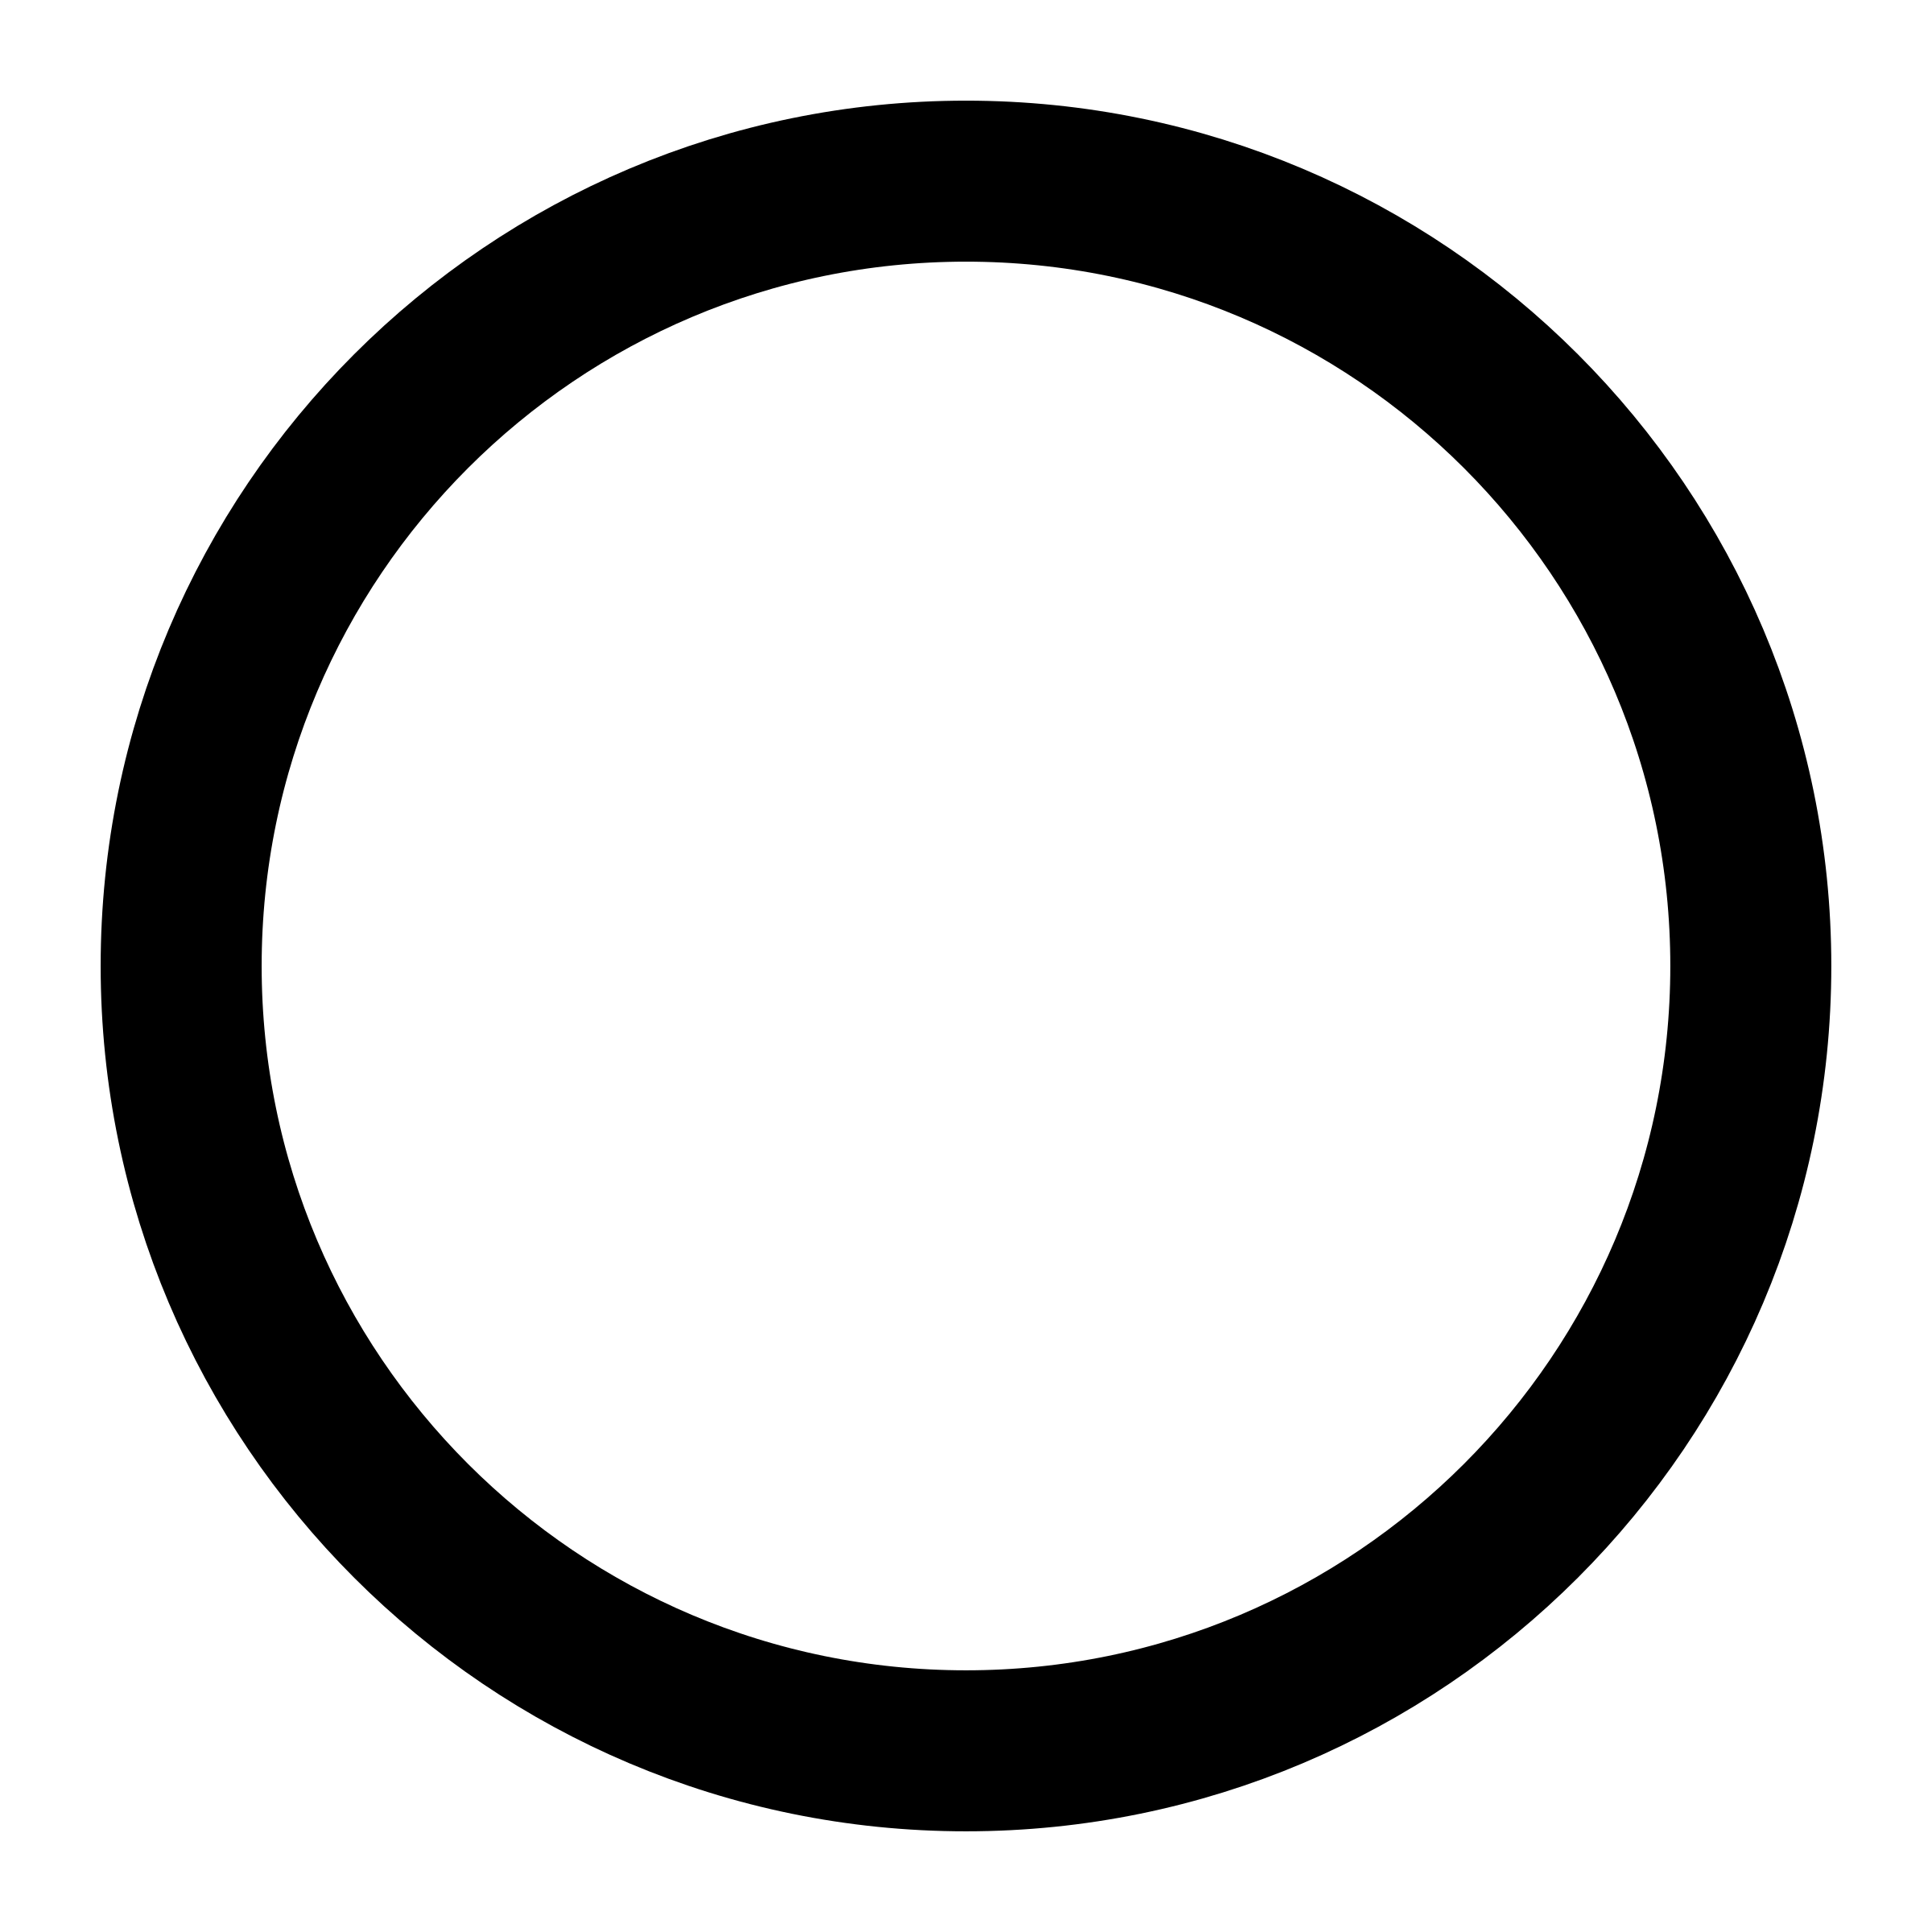 Circle png transparent. Mono icons free and